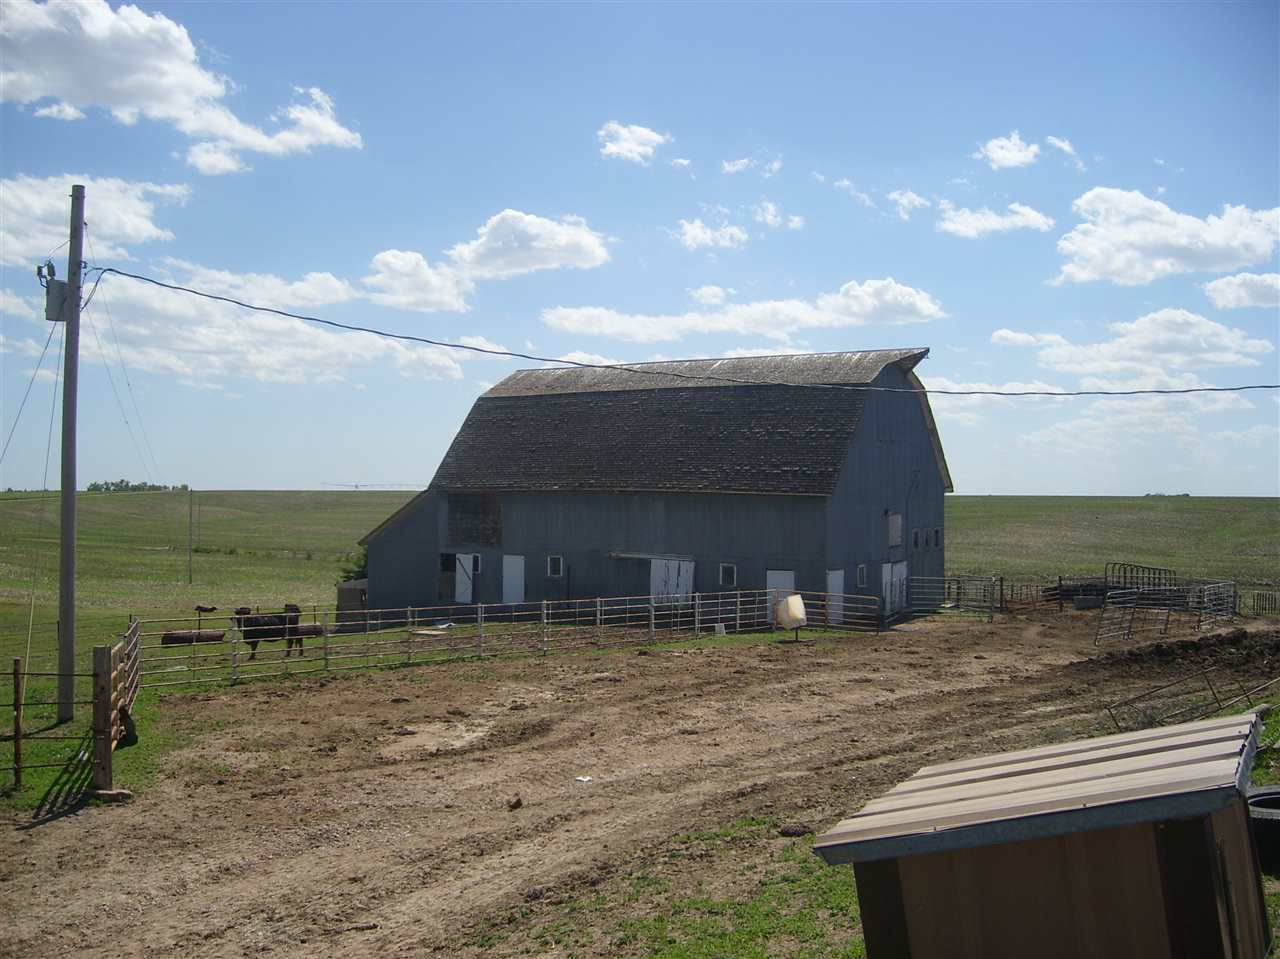 Nebraska adams county ayr 68925 - 17420 Adams Central Rd Ayr Ne